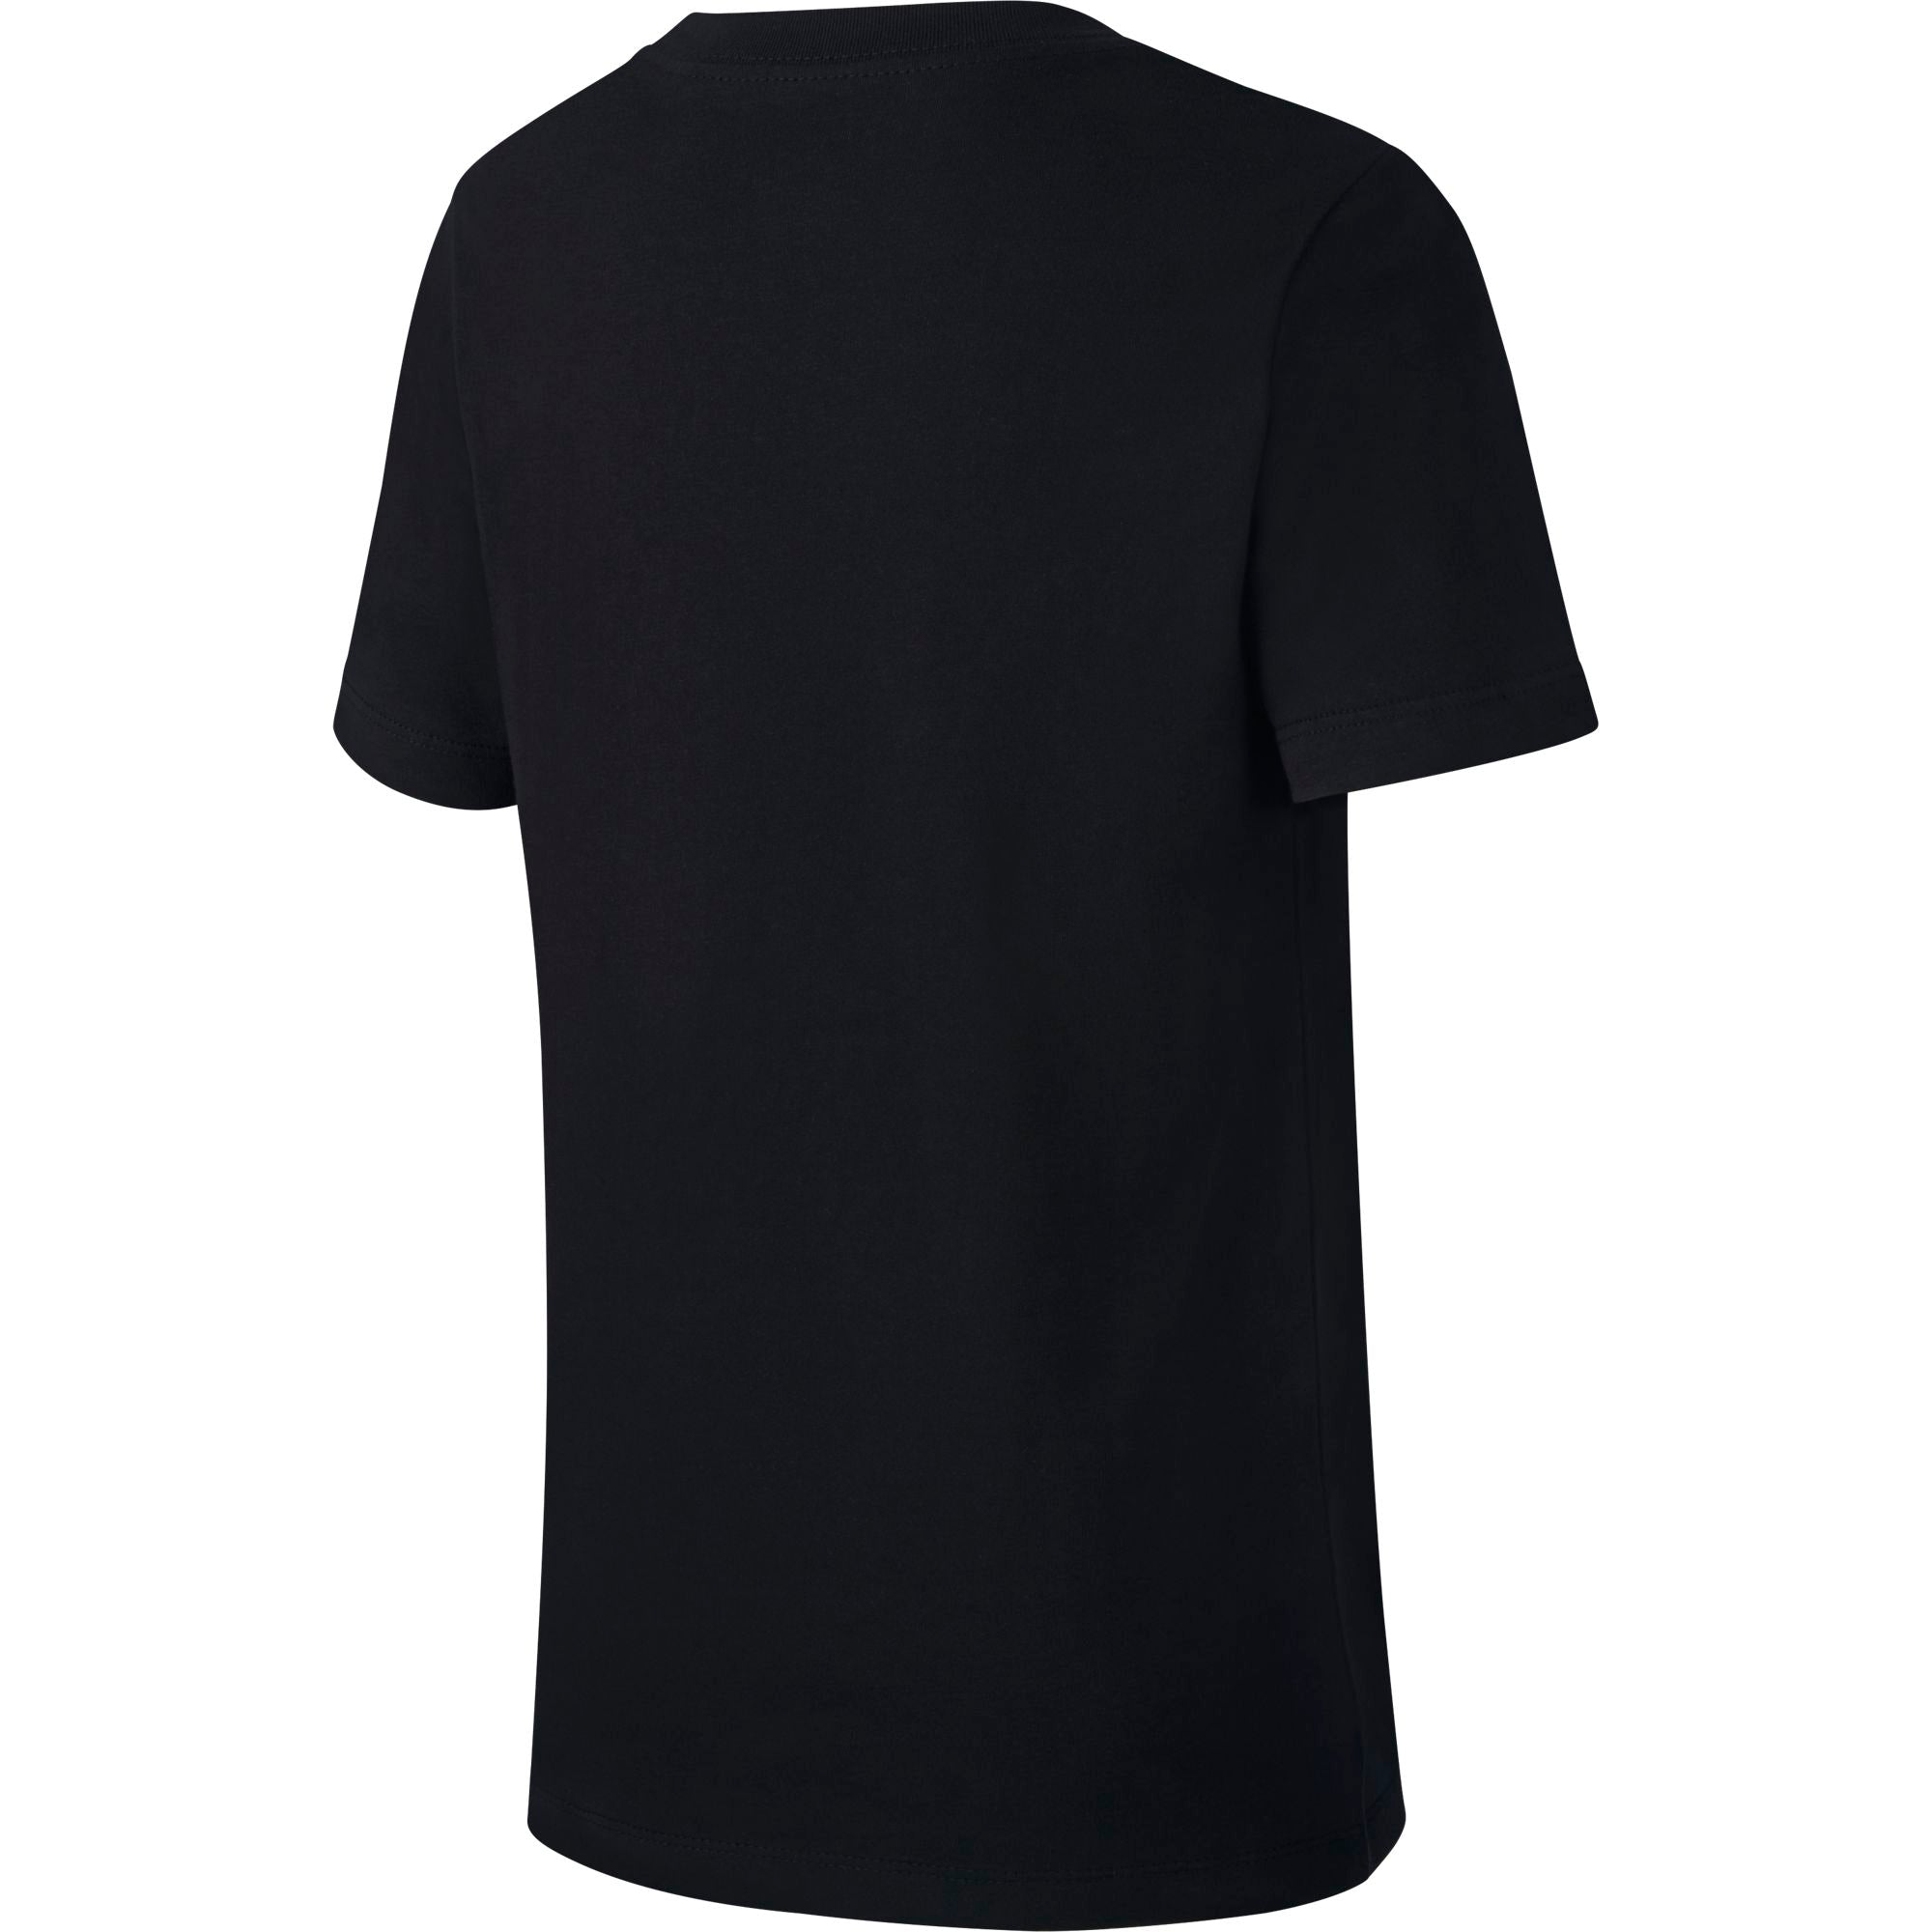 Nike Kids Straight Baller Textured Graphic Tee - Black/White